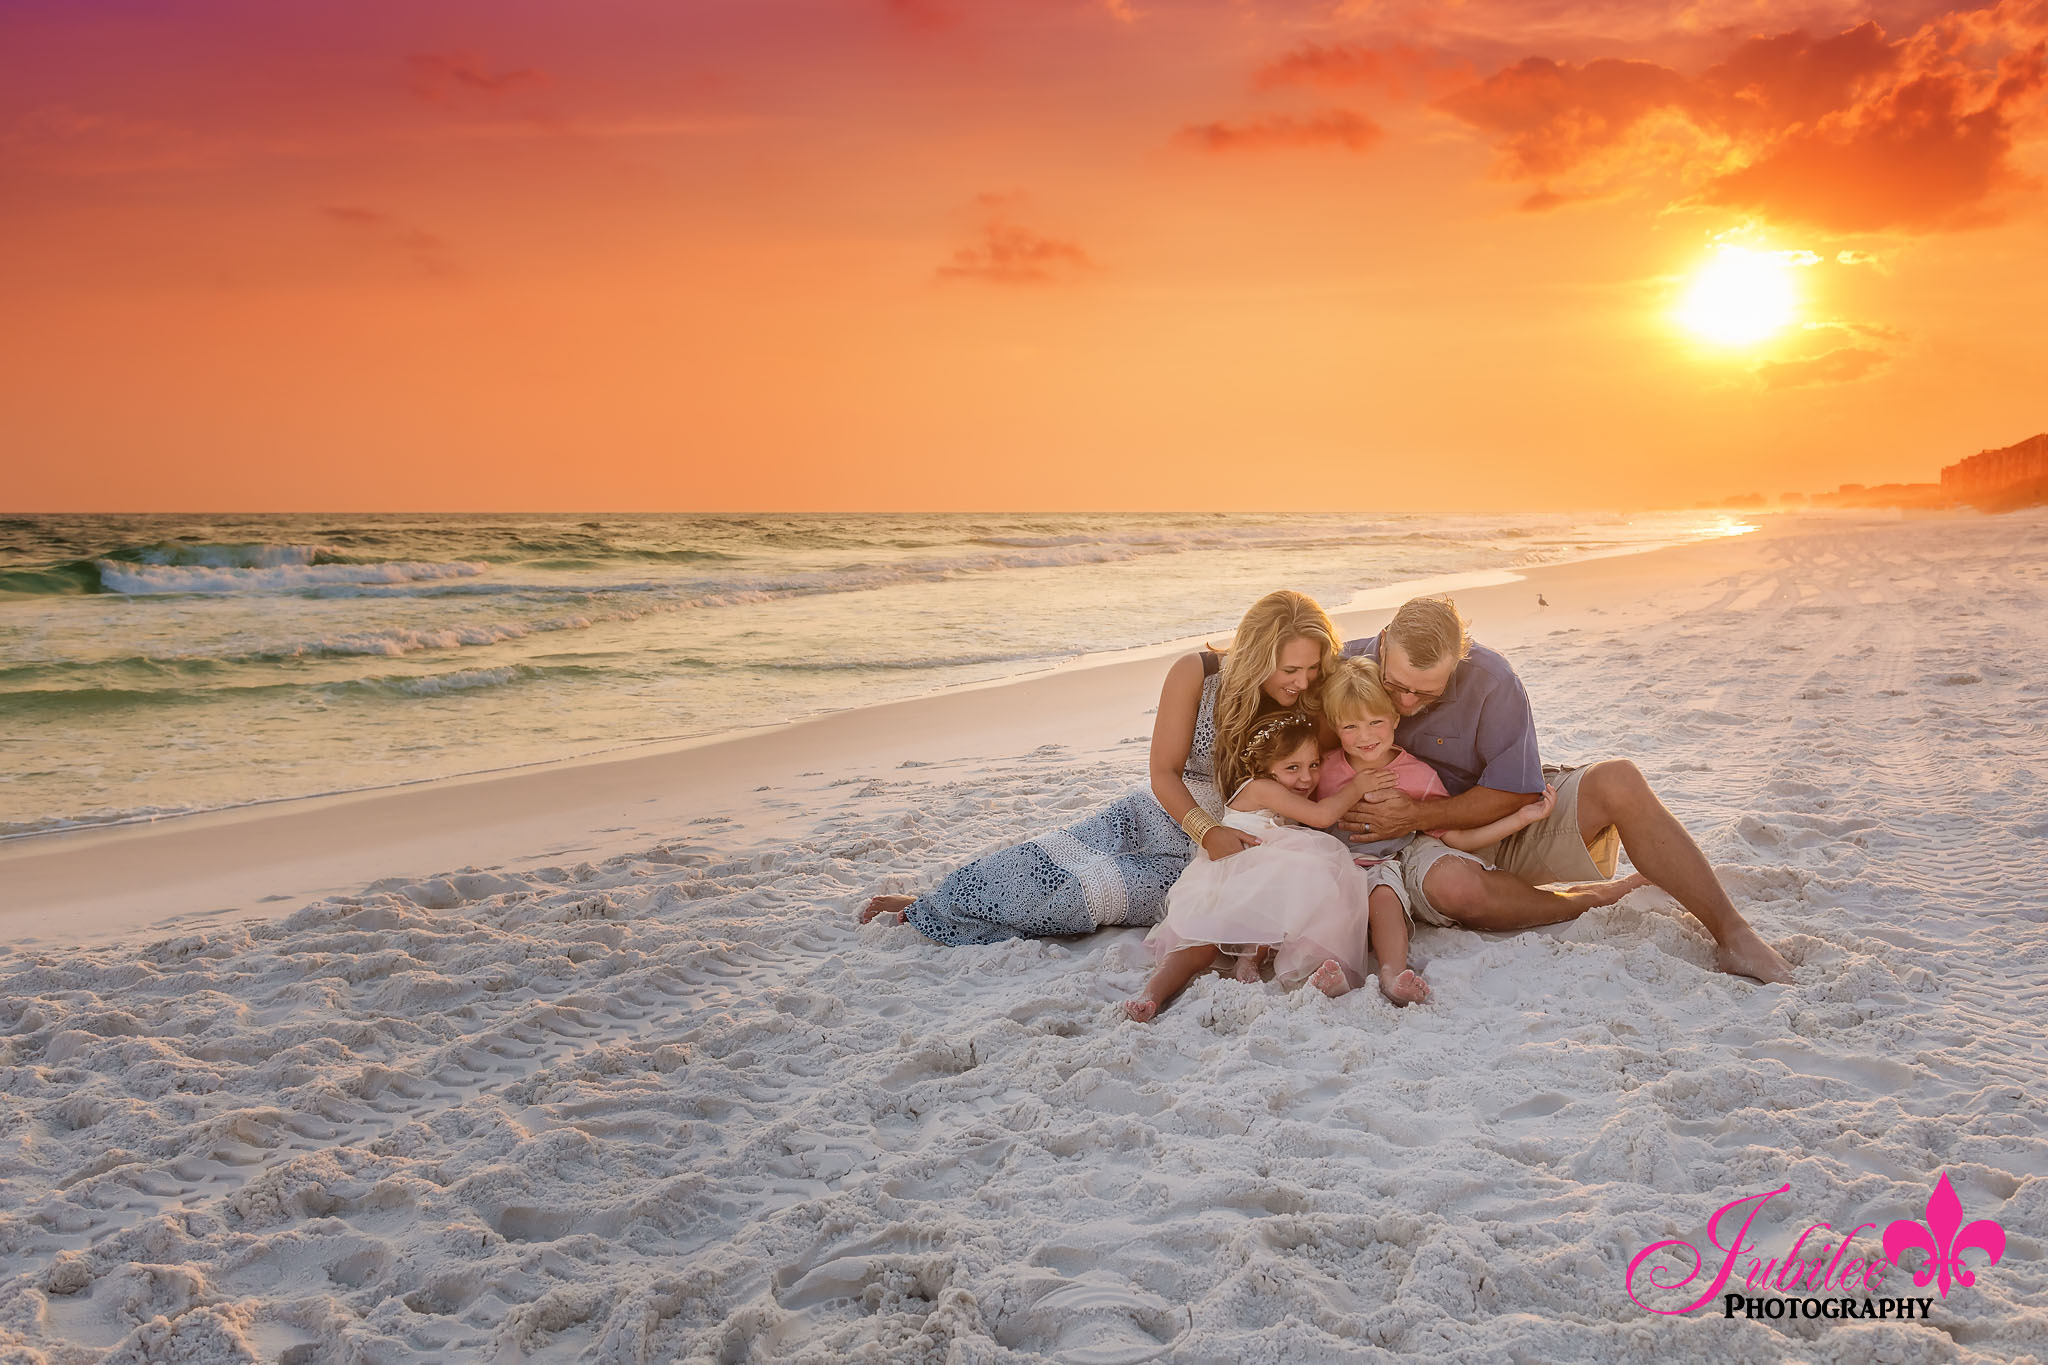 destin_beach_photographer_6192